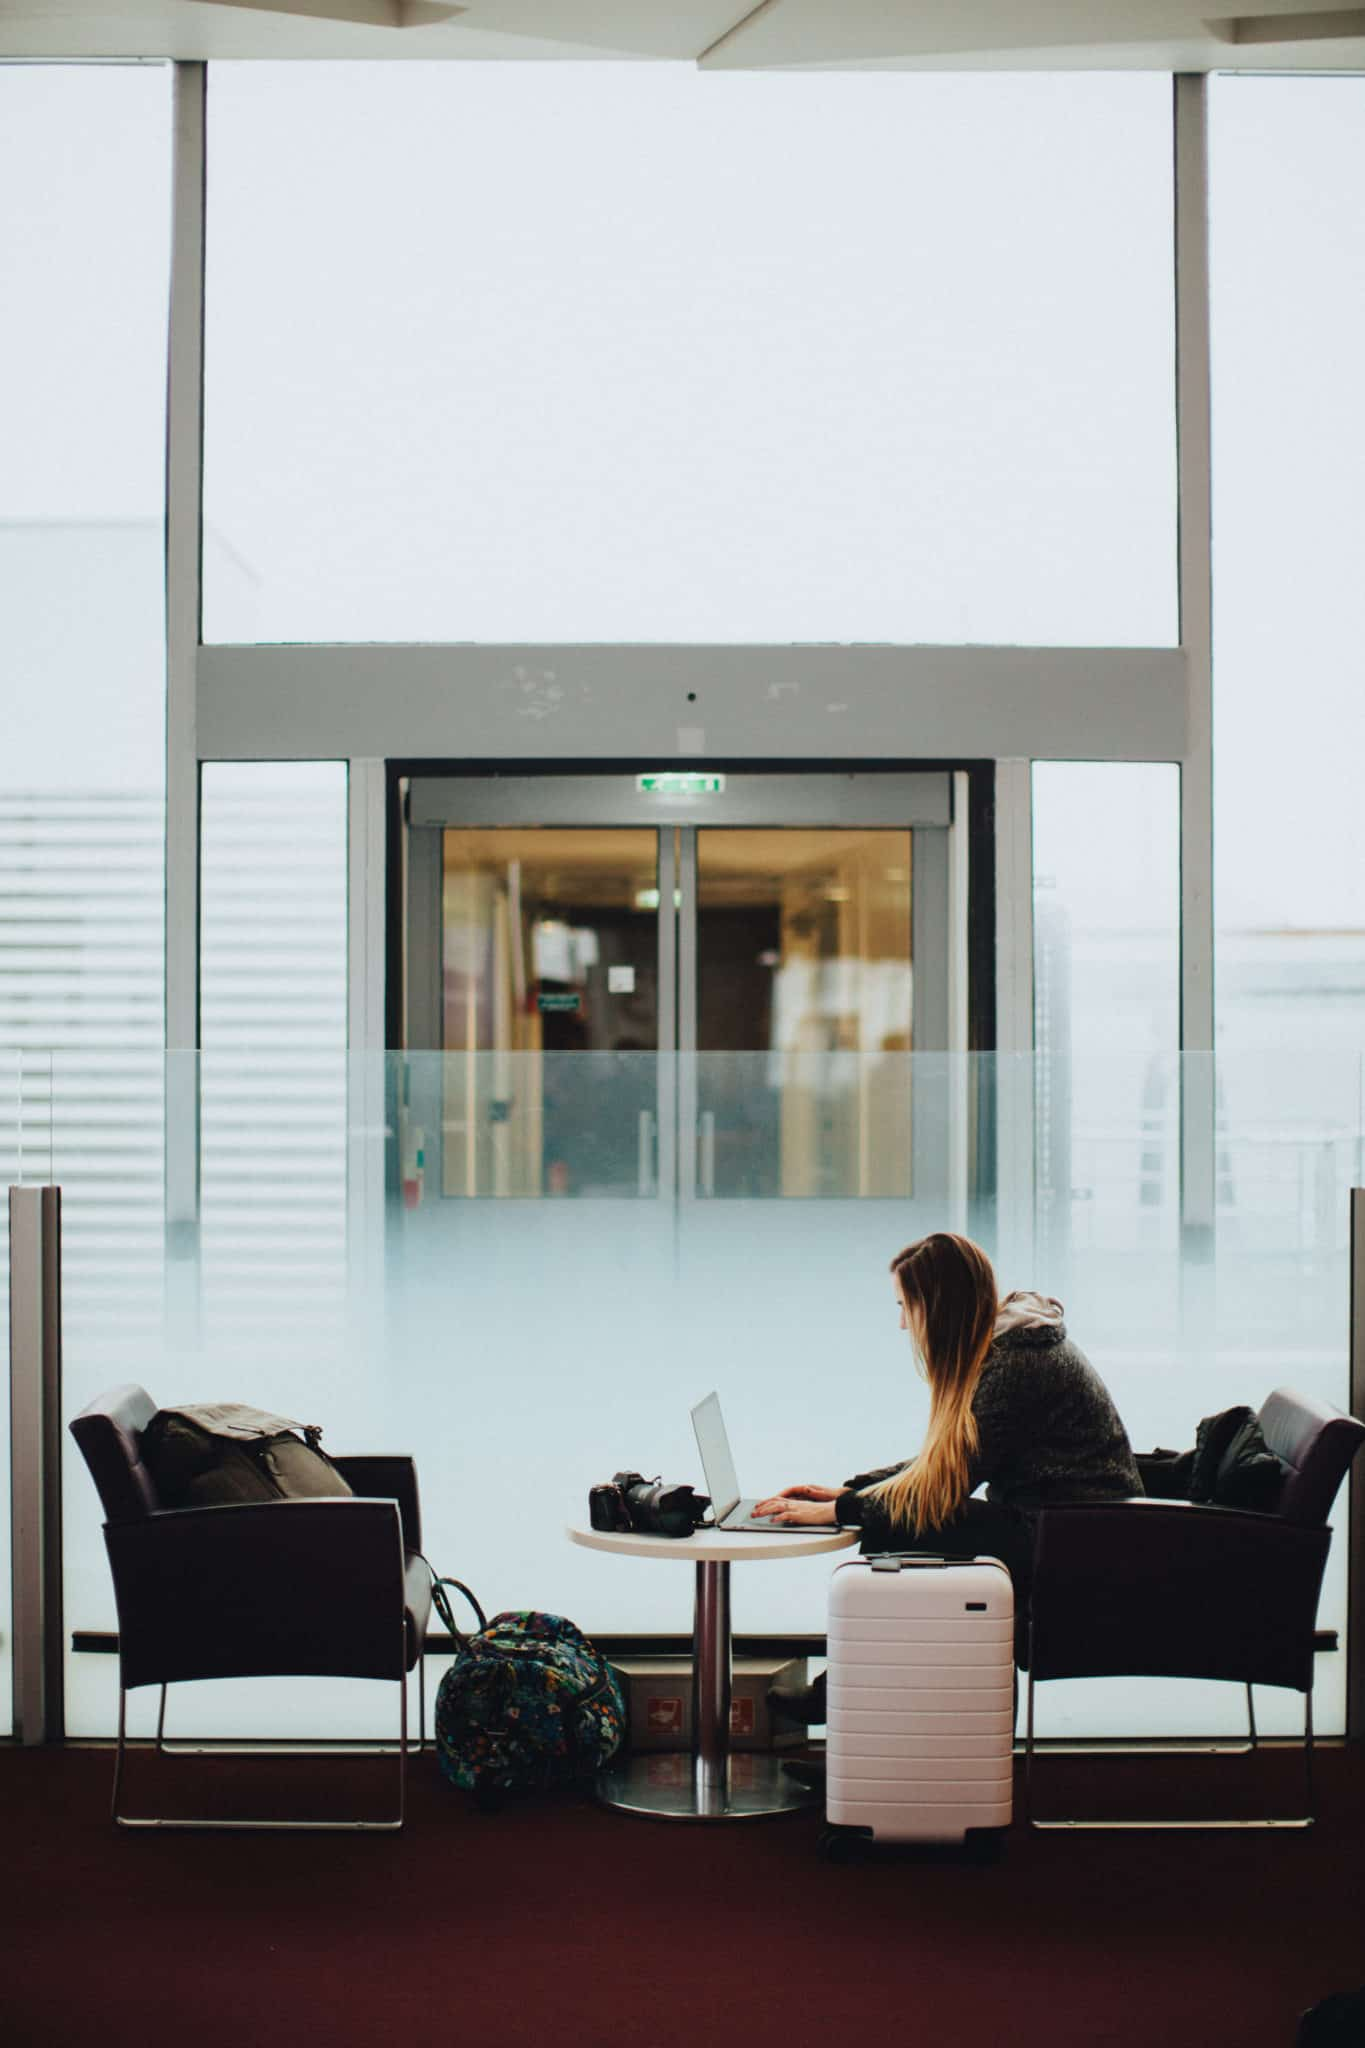 Dreading your flight for Christmas? Stressing out about holiday crowds? We're sharing our complete list of surviving the airport during the holidays! - TheMandagies.comDreading your flight for Christmas? Stressing out about holiday crowds? We're sharing our complete list of surviving the airport during the holidays! - TheMandagies.com